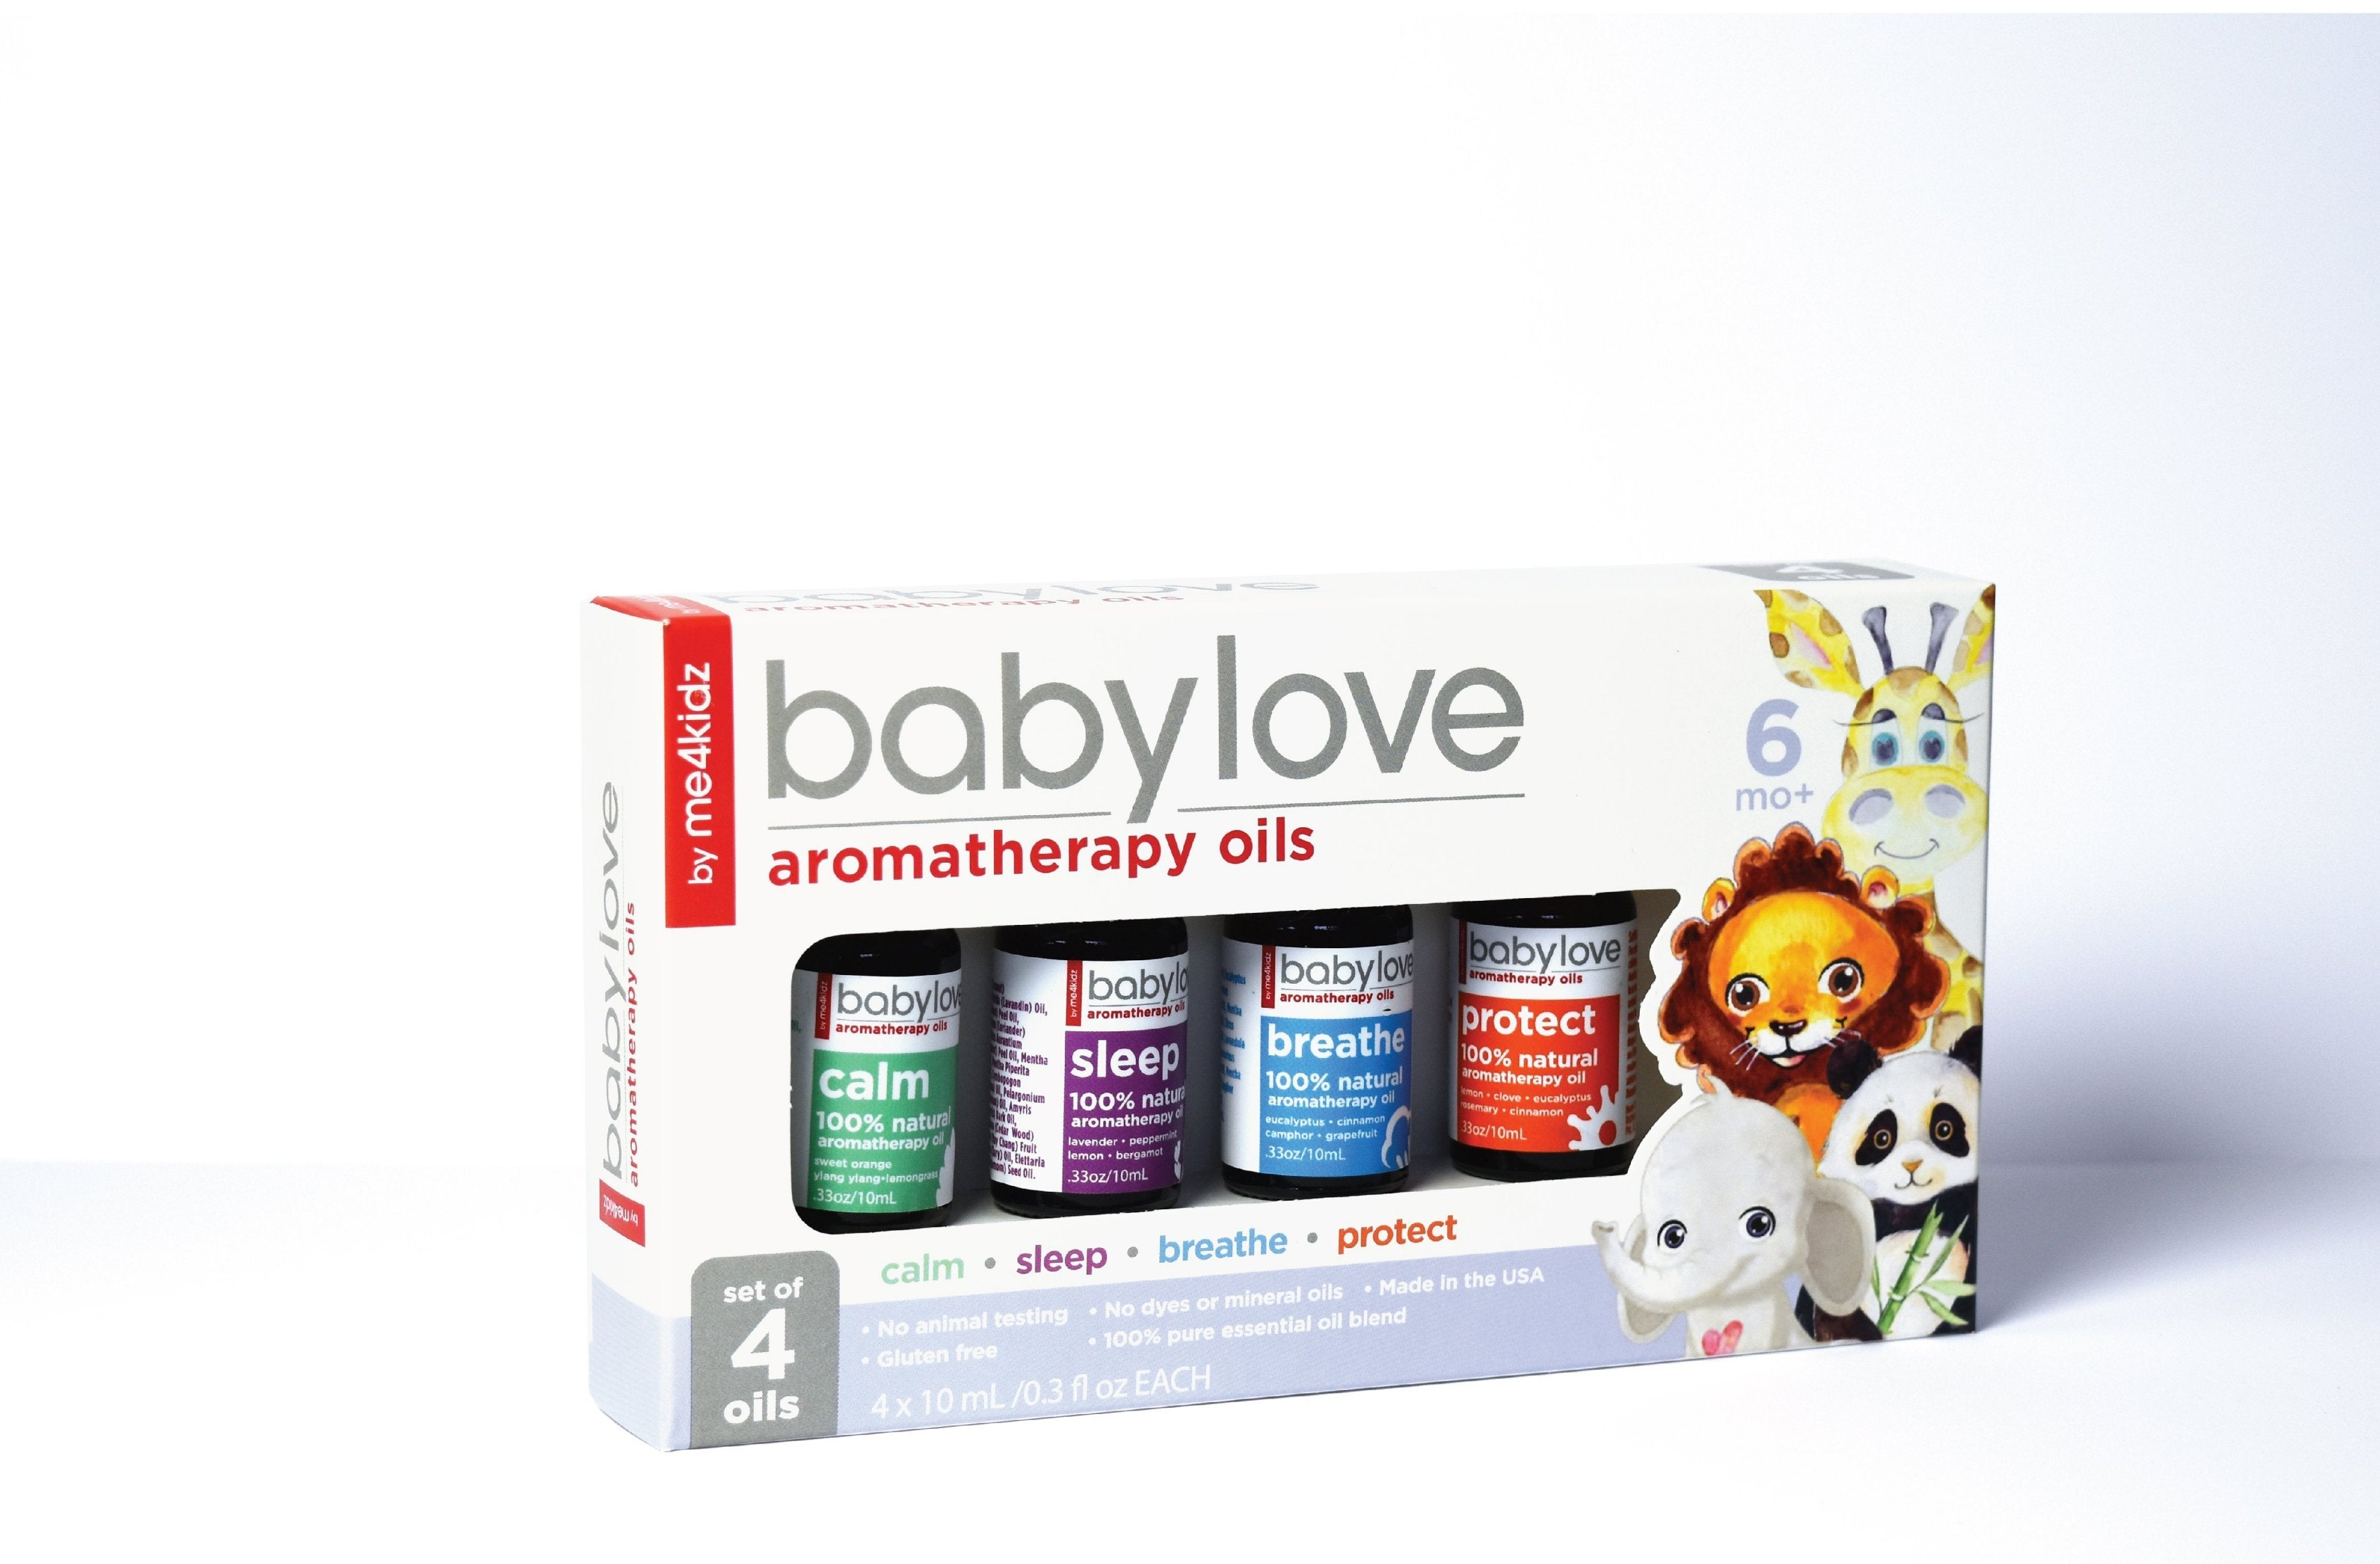 collections/productshots_babylove_front-1.jpg